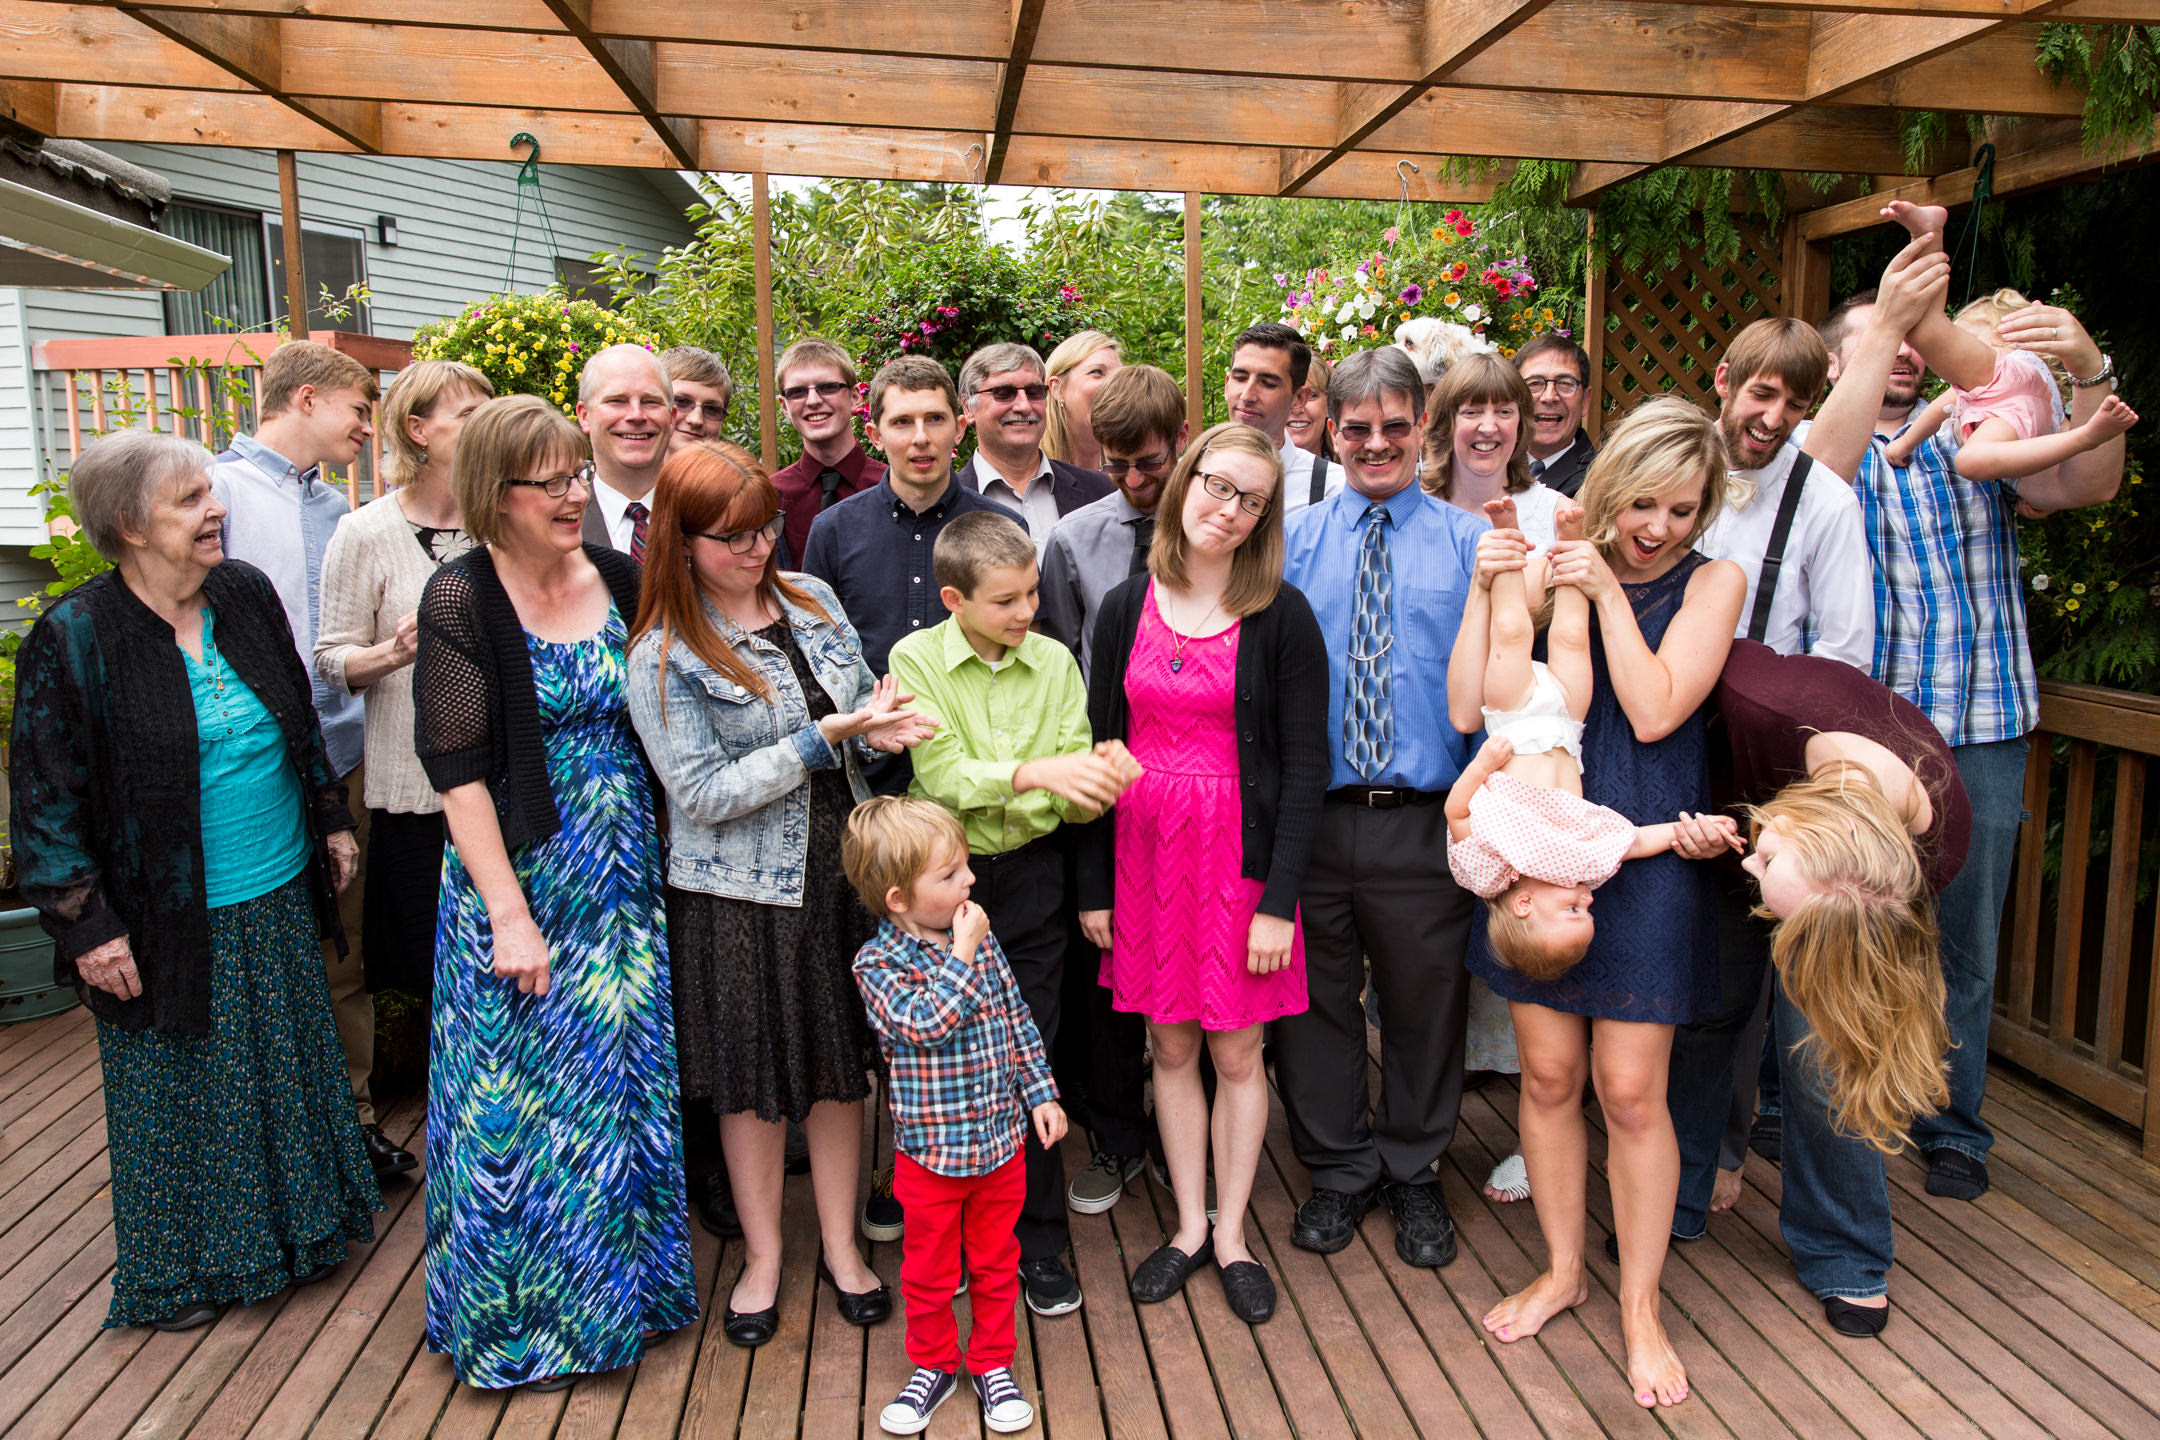 20150913_Tat_Anna and Anders Wedding-14.jpg